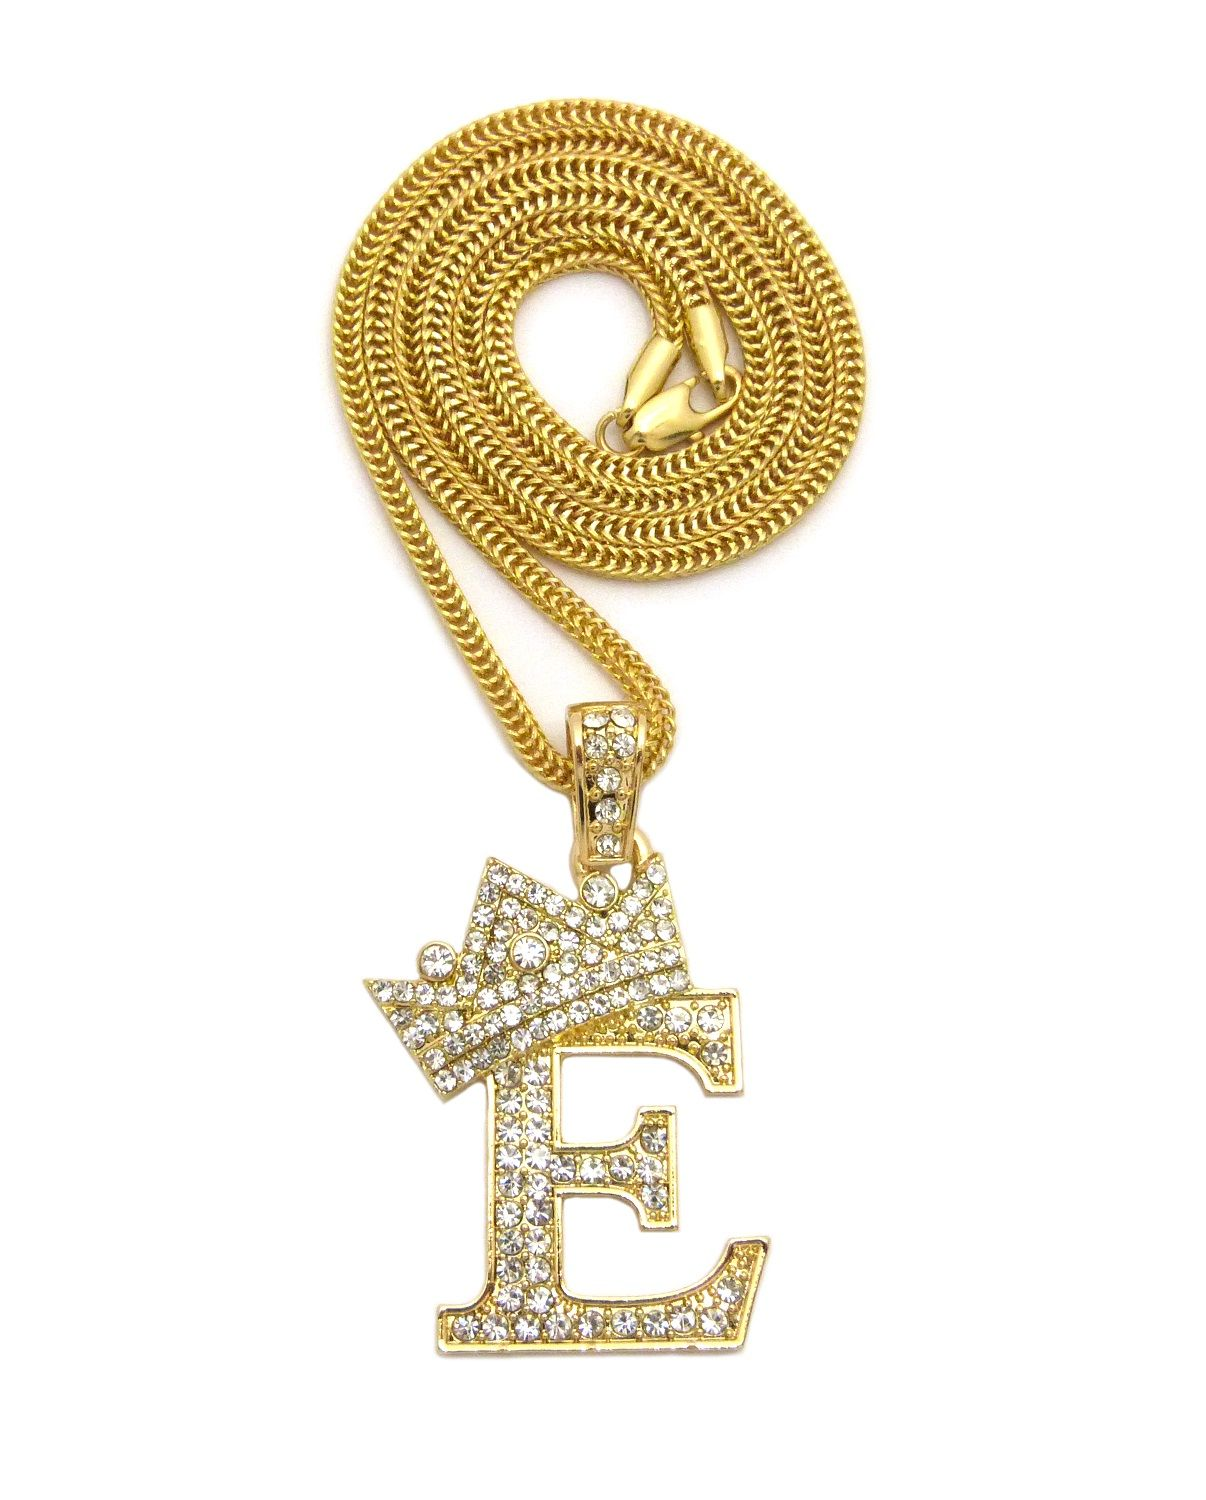 Iced out king e pendant 24 boxcubanropefox chain hip hop iced out king e pendant 24 boxcubanropefox chain hip hop necklace xz162g mozeypictures Gallery